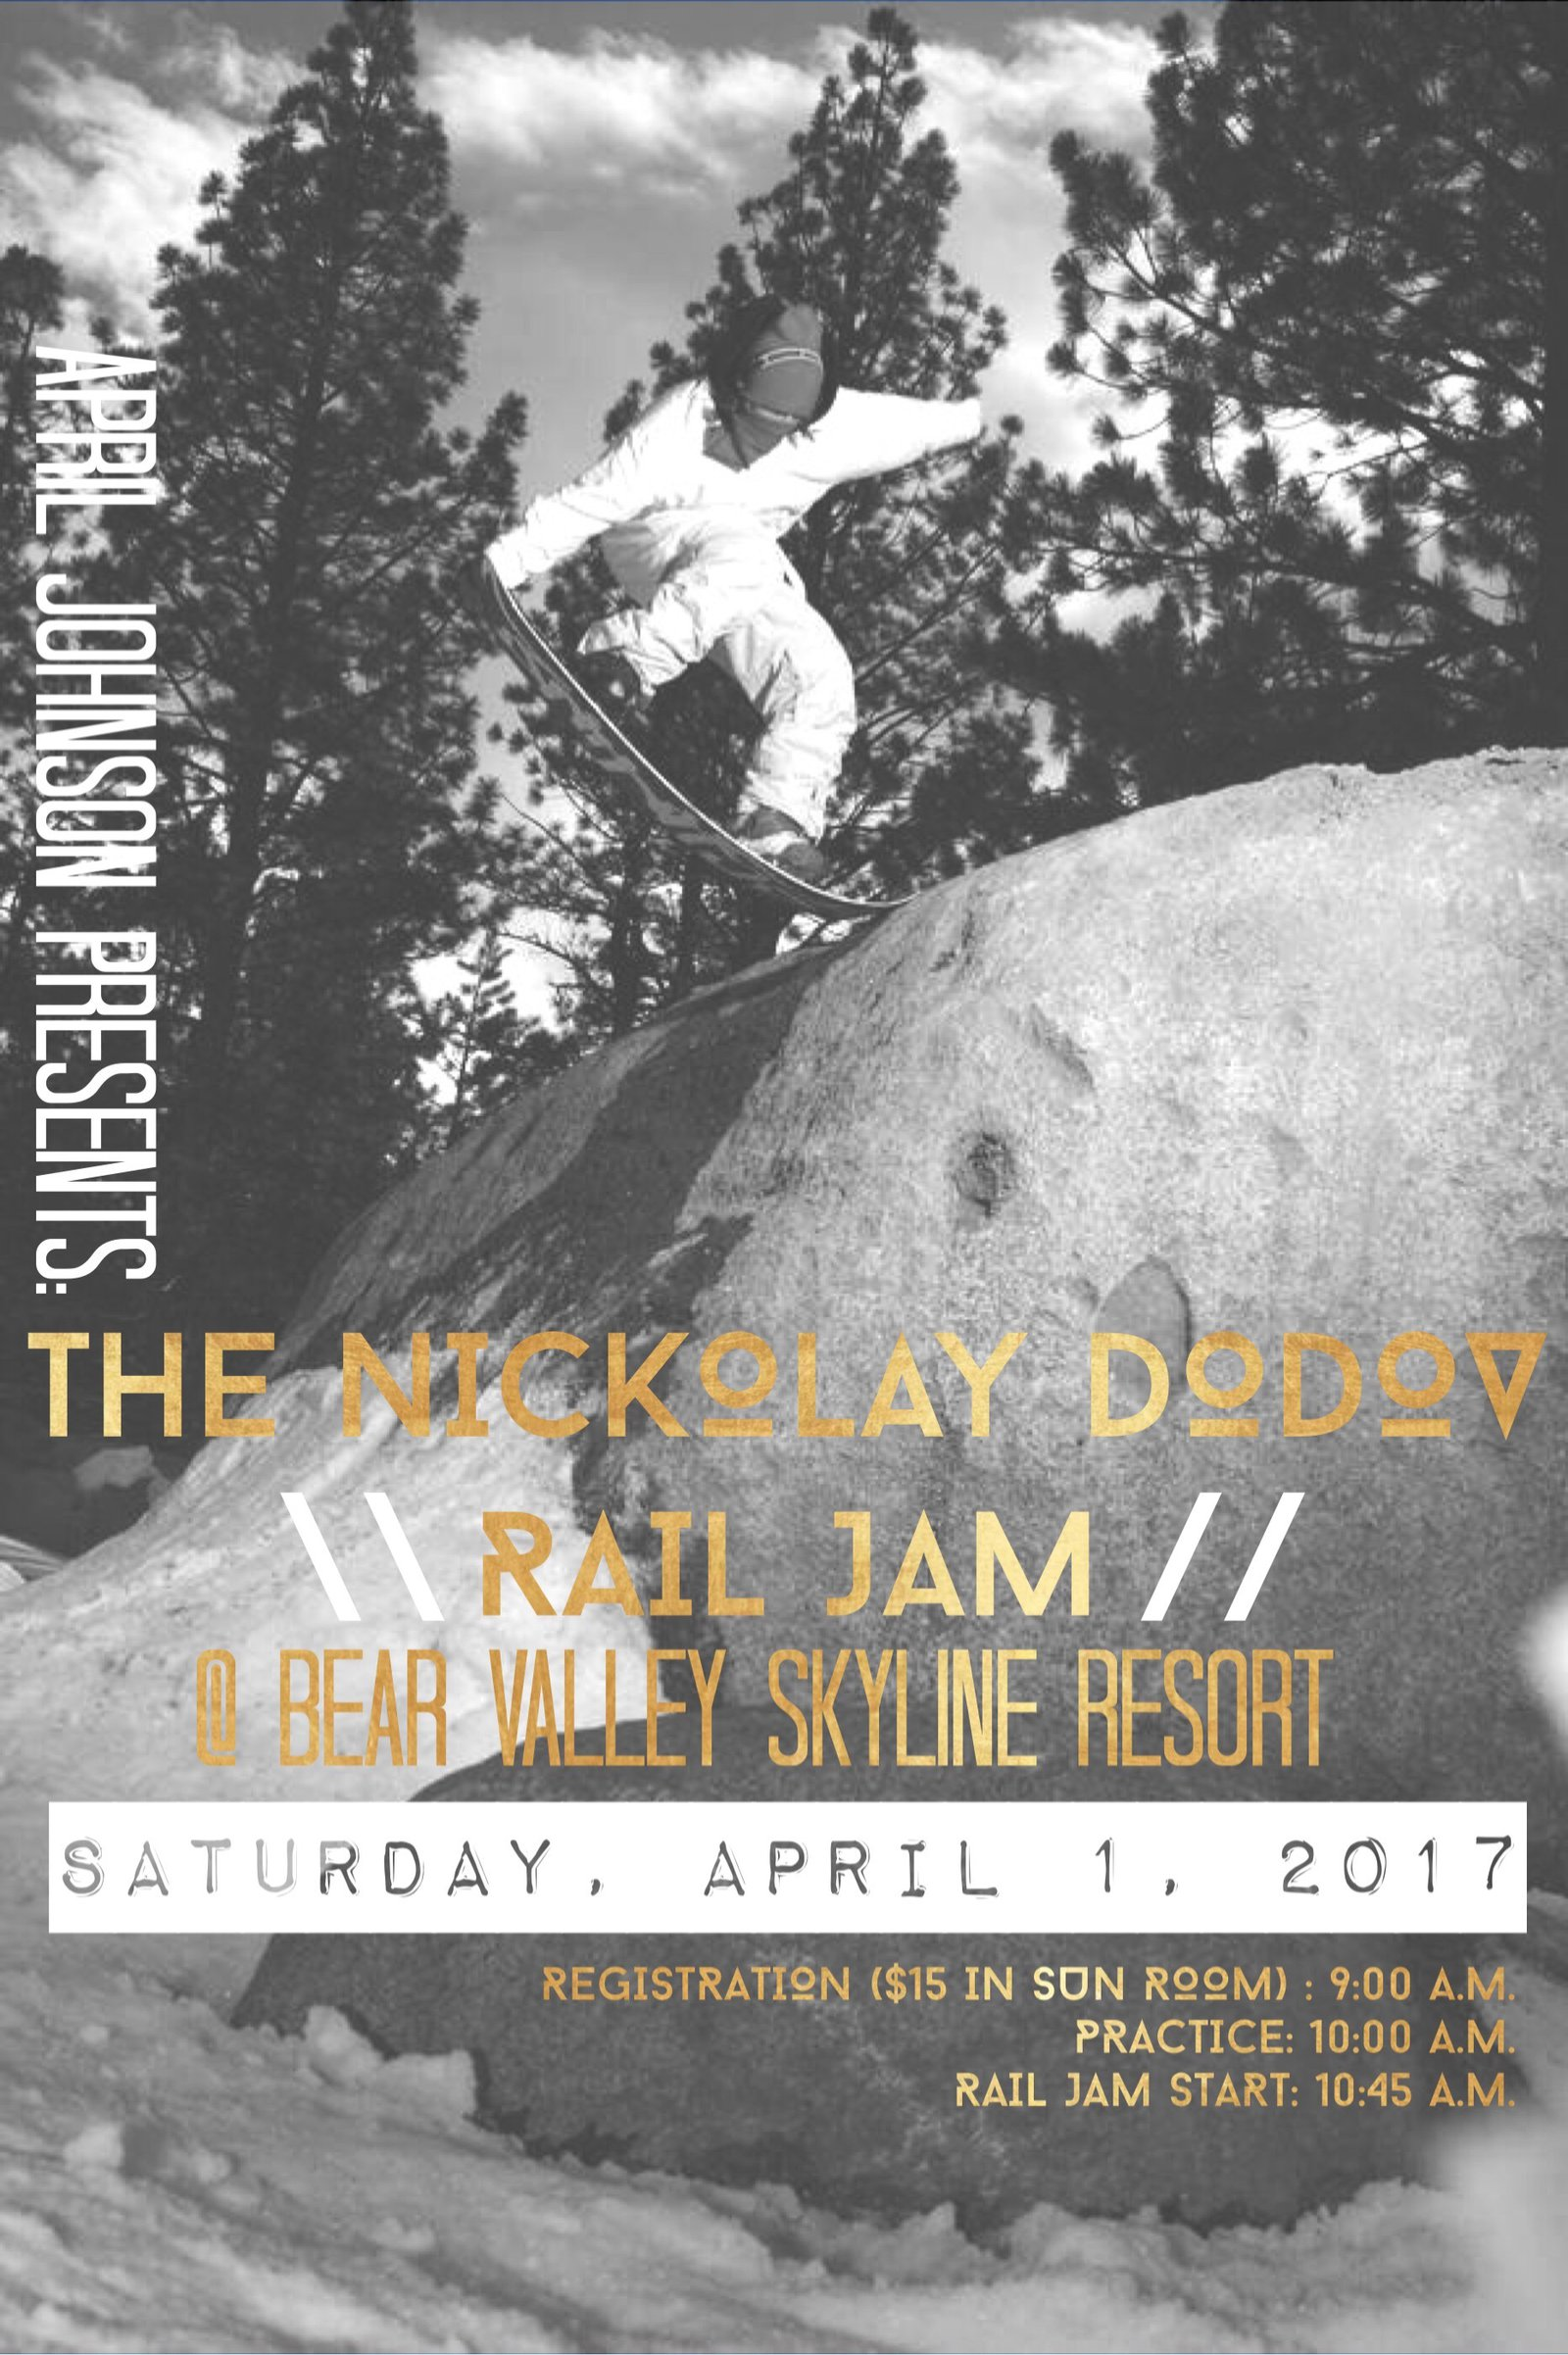 Nickolay Dodov Rail Jam - Bear Valley Mountain - APRIL 1ST